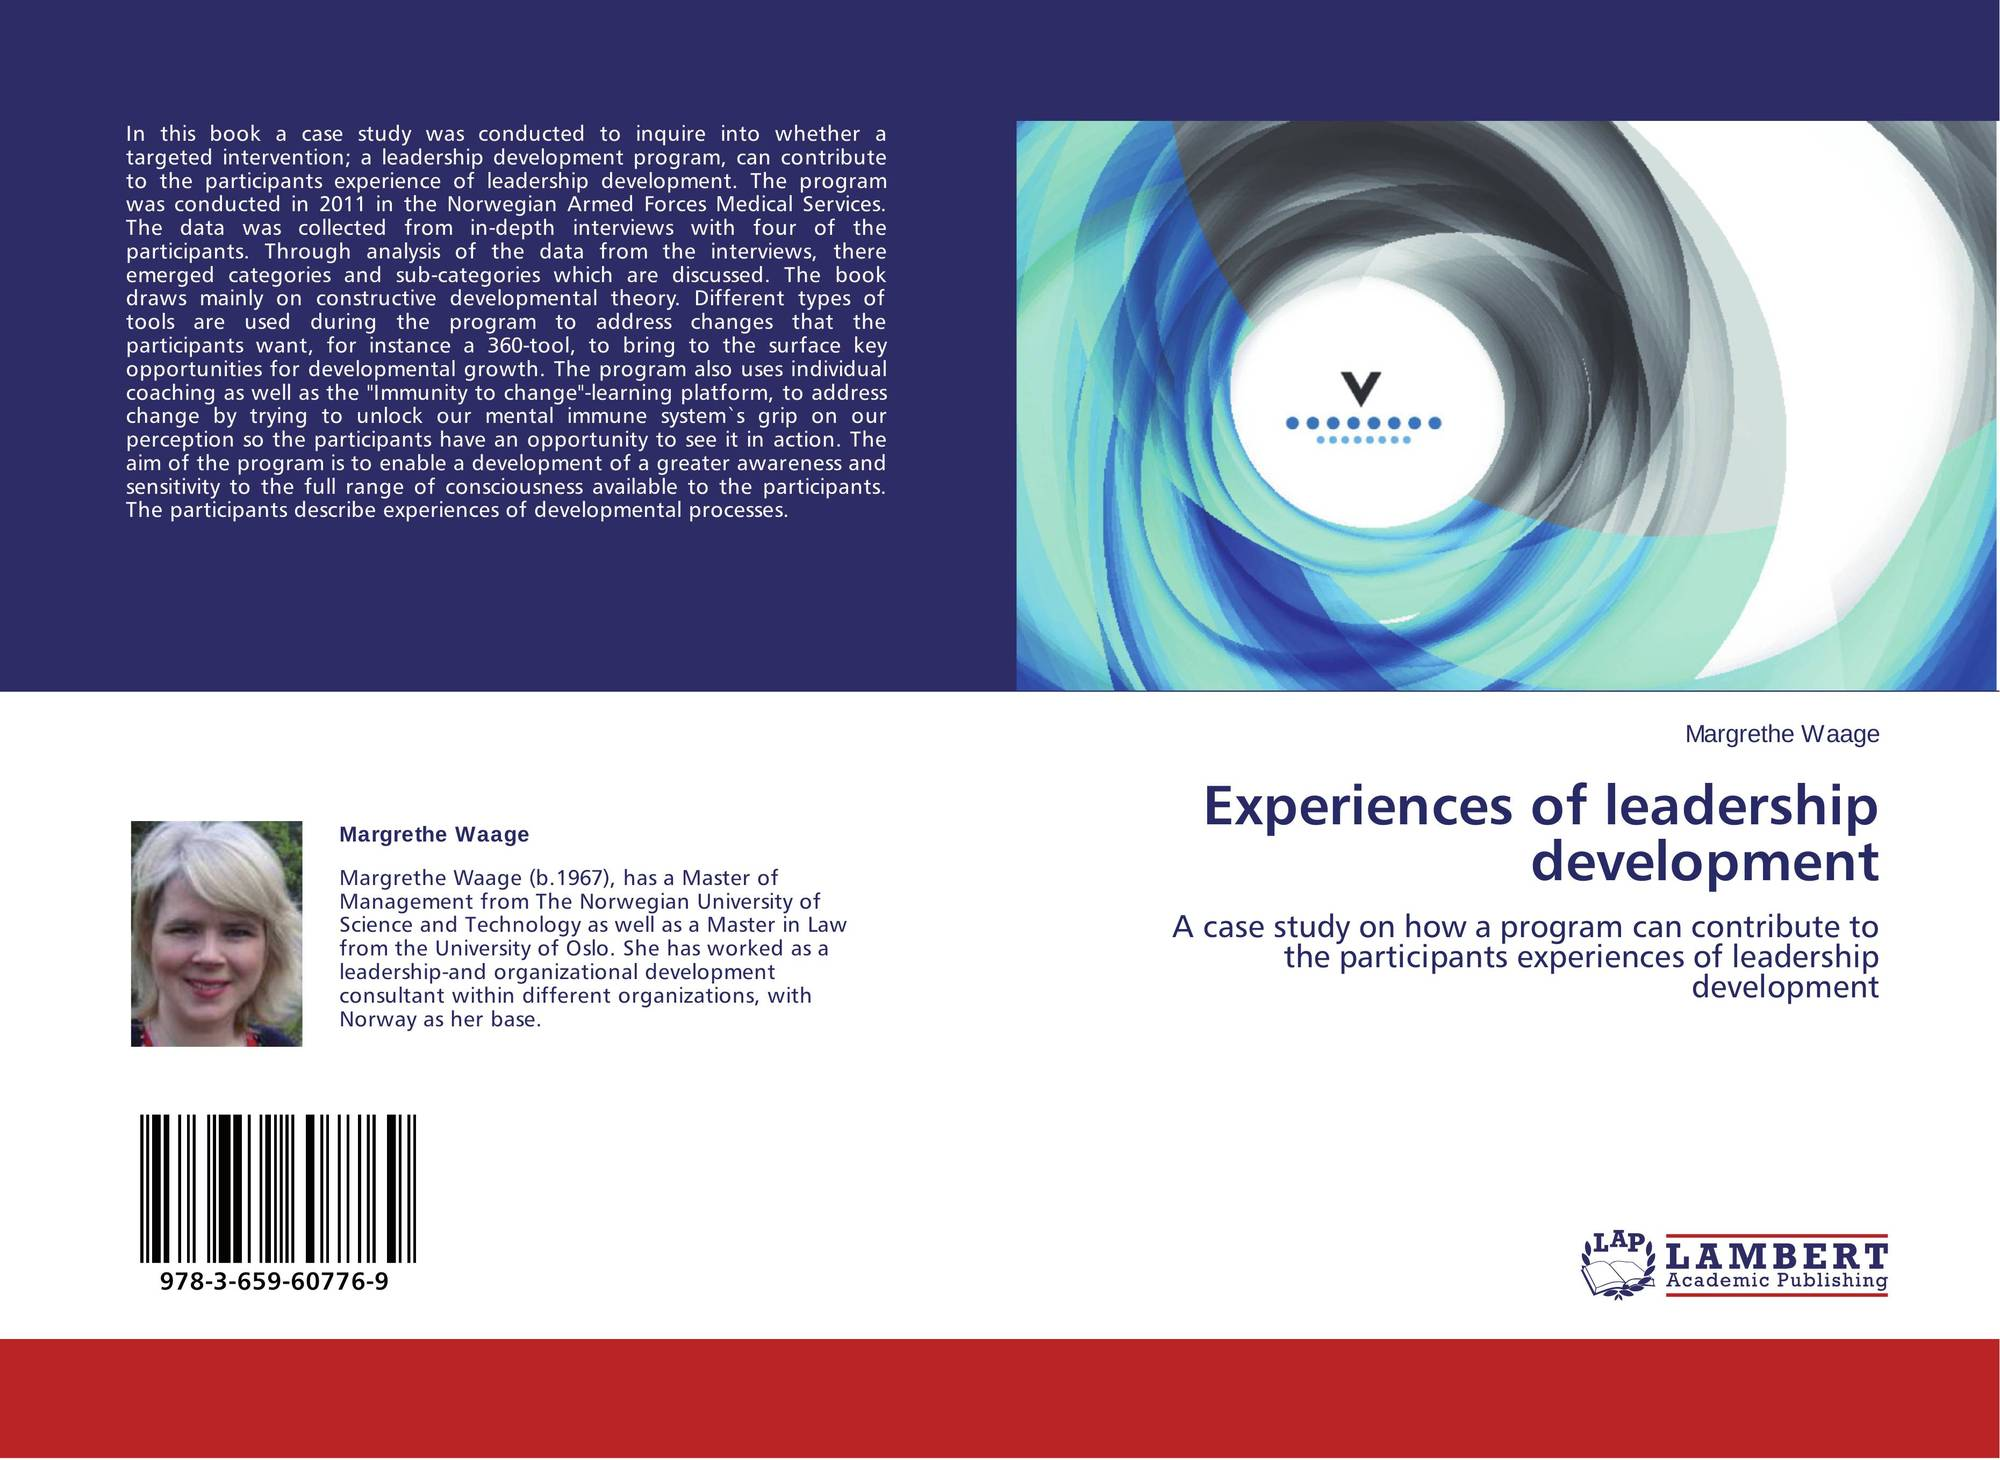 the program for leadership development The leadership development programme imagine a world with a thousand great leaders as a member of the leadership development programme, you will be part of a two-year programme design to foster, develop and hone leadership skills in promising young leaders.